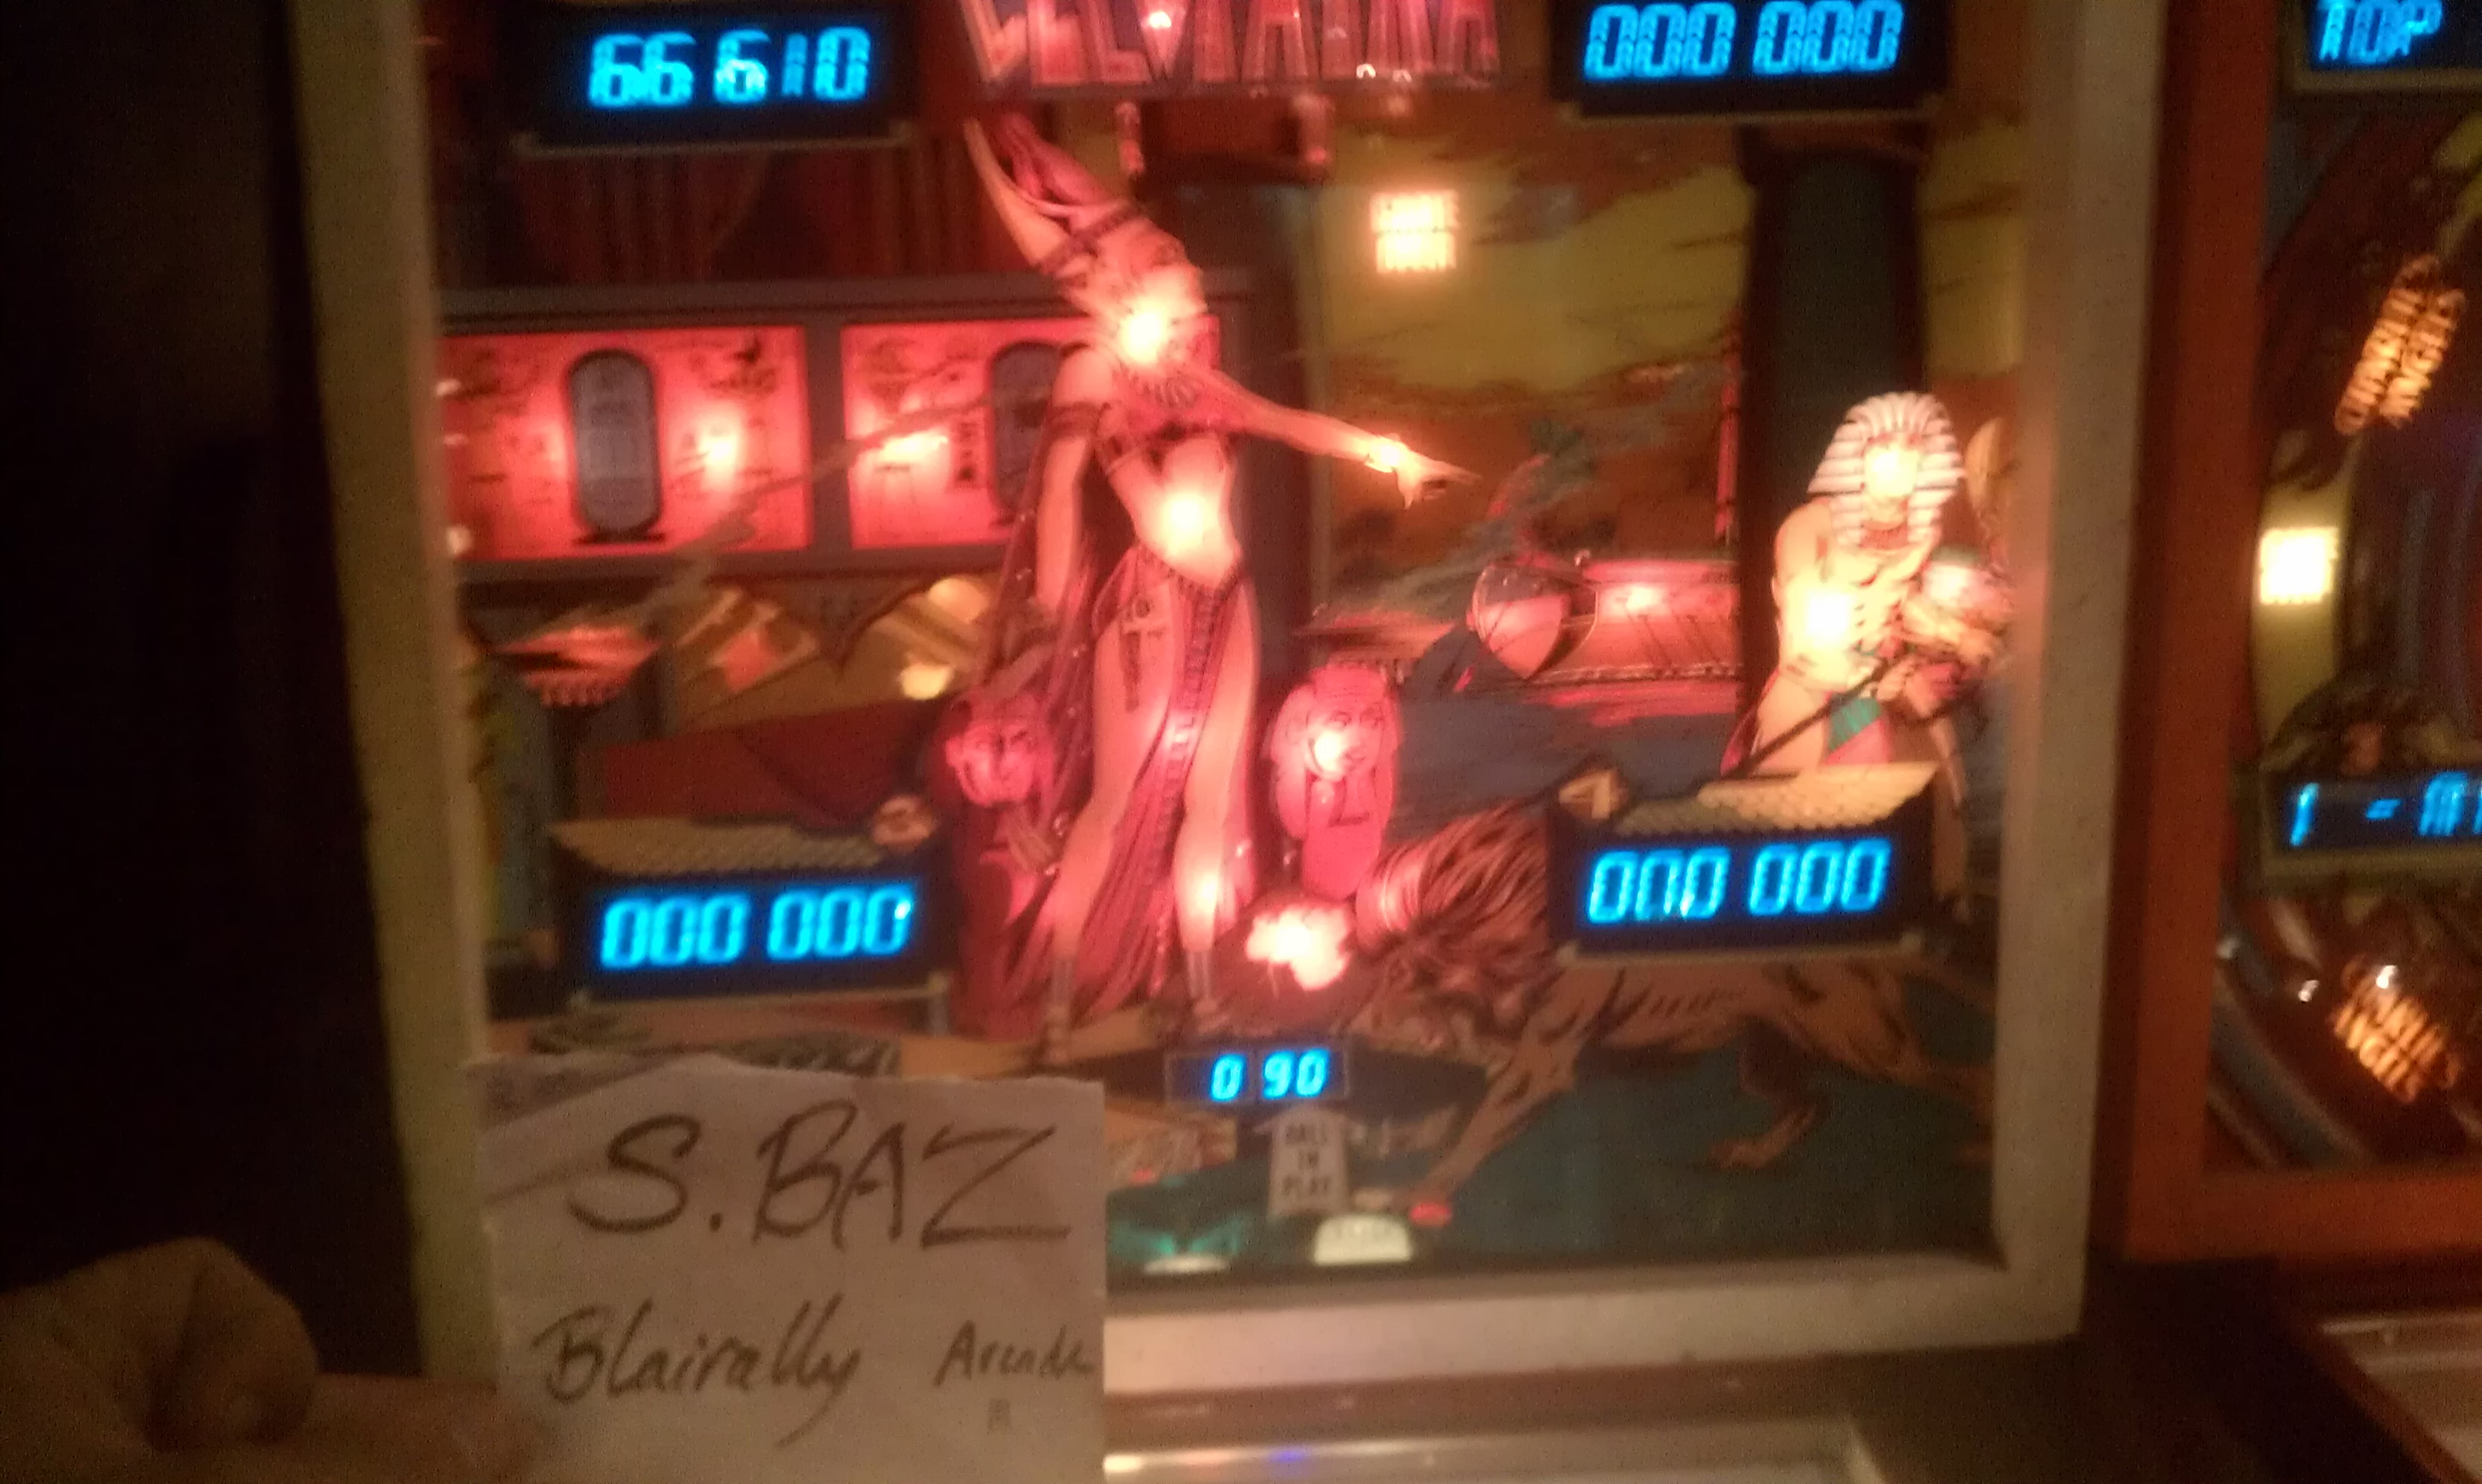 S.BAZ: Cleopatra (Pinball: 5 Balls) 66,610 points on 2016-04-05 17:29:07